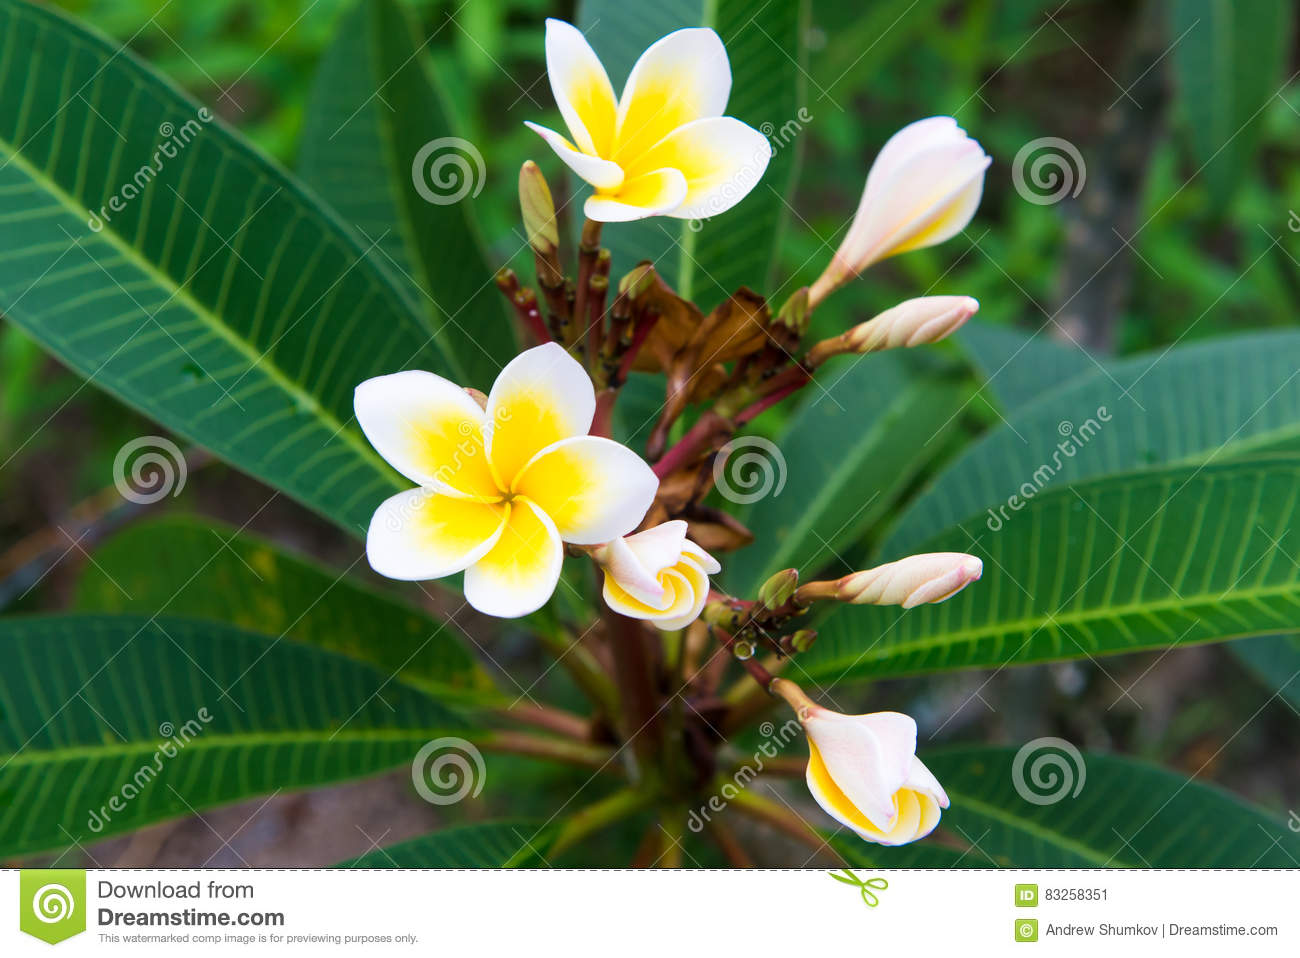 Plumeria a very beautiful flower from thailand stock image image plumeria a very beautiful flower from thailand izmirmasajfo Choice Image